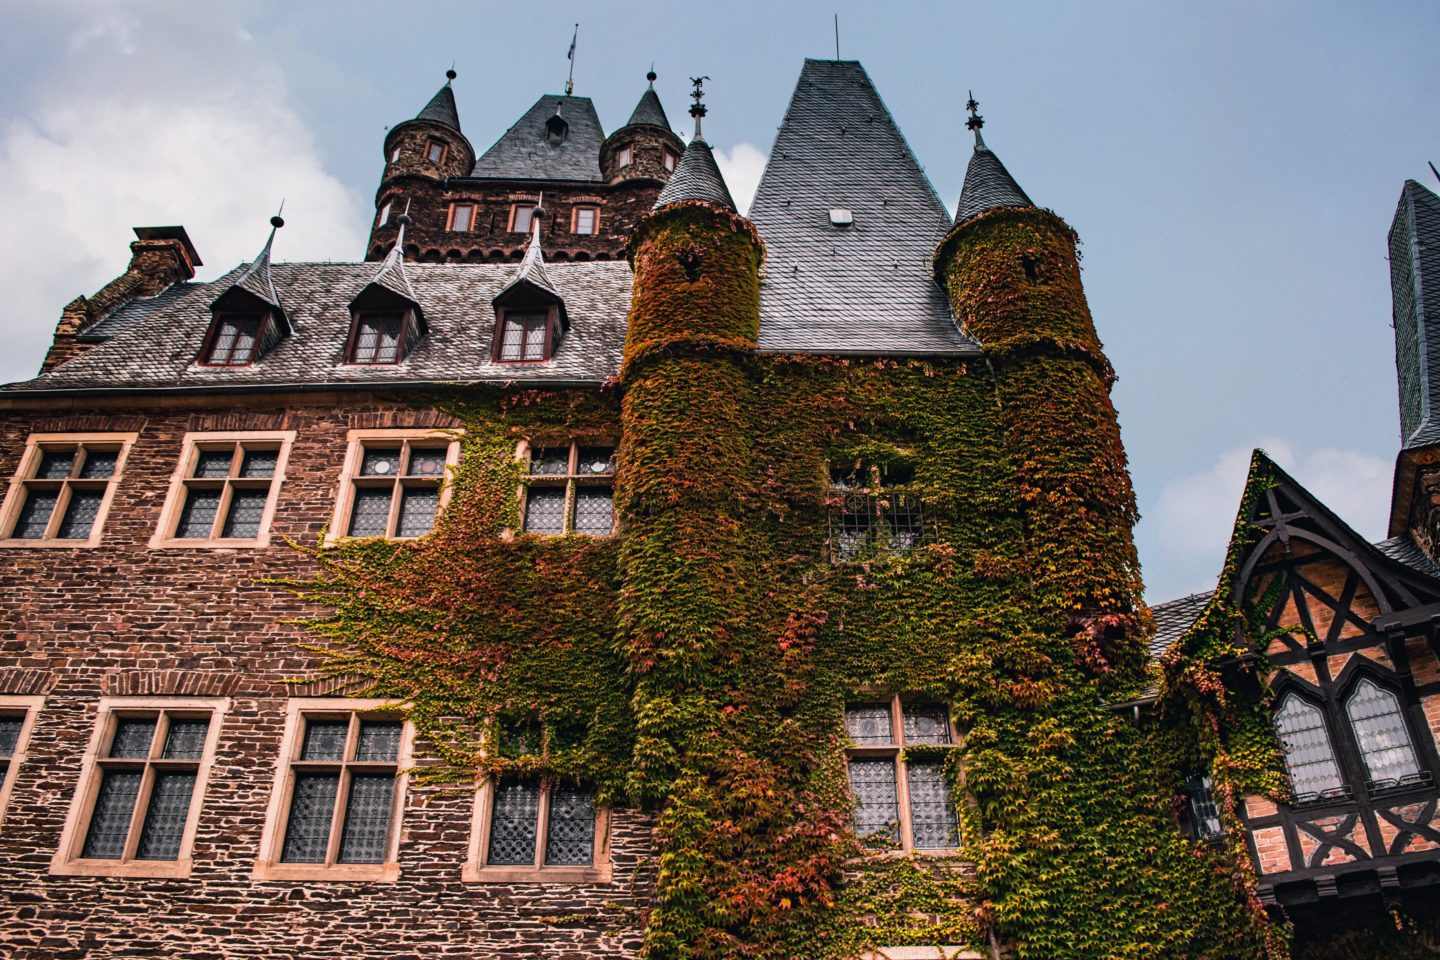 Cochem Castle is stunning in the autumn